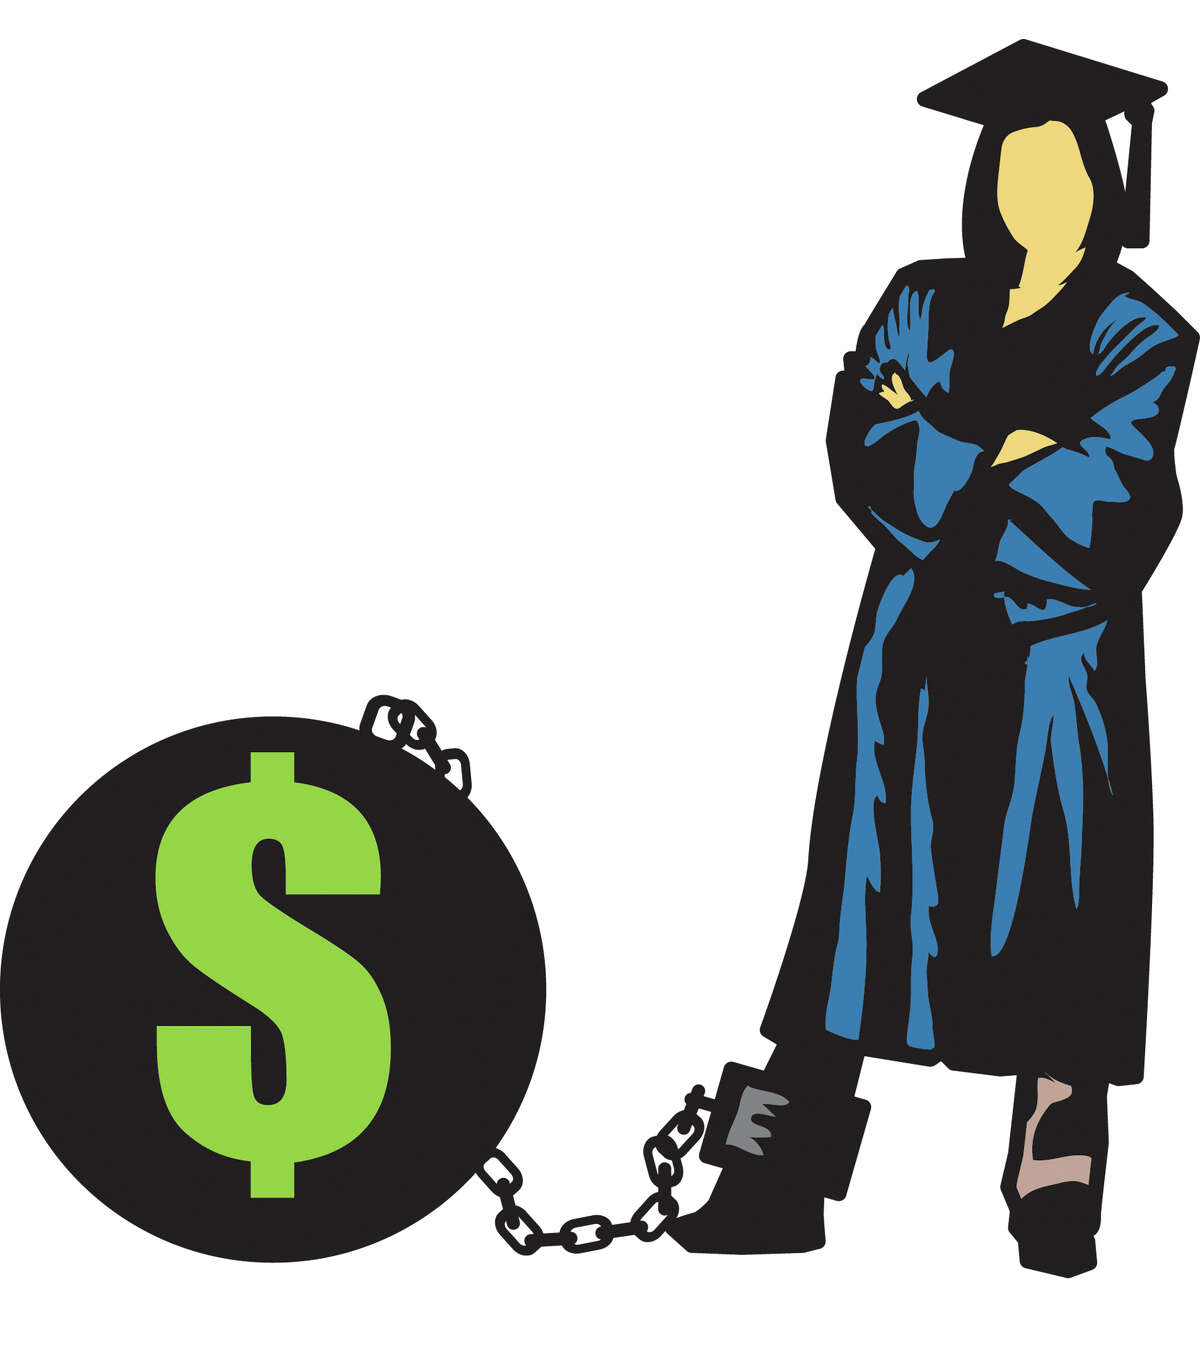 Illustration of college student with student loan debt